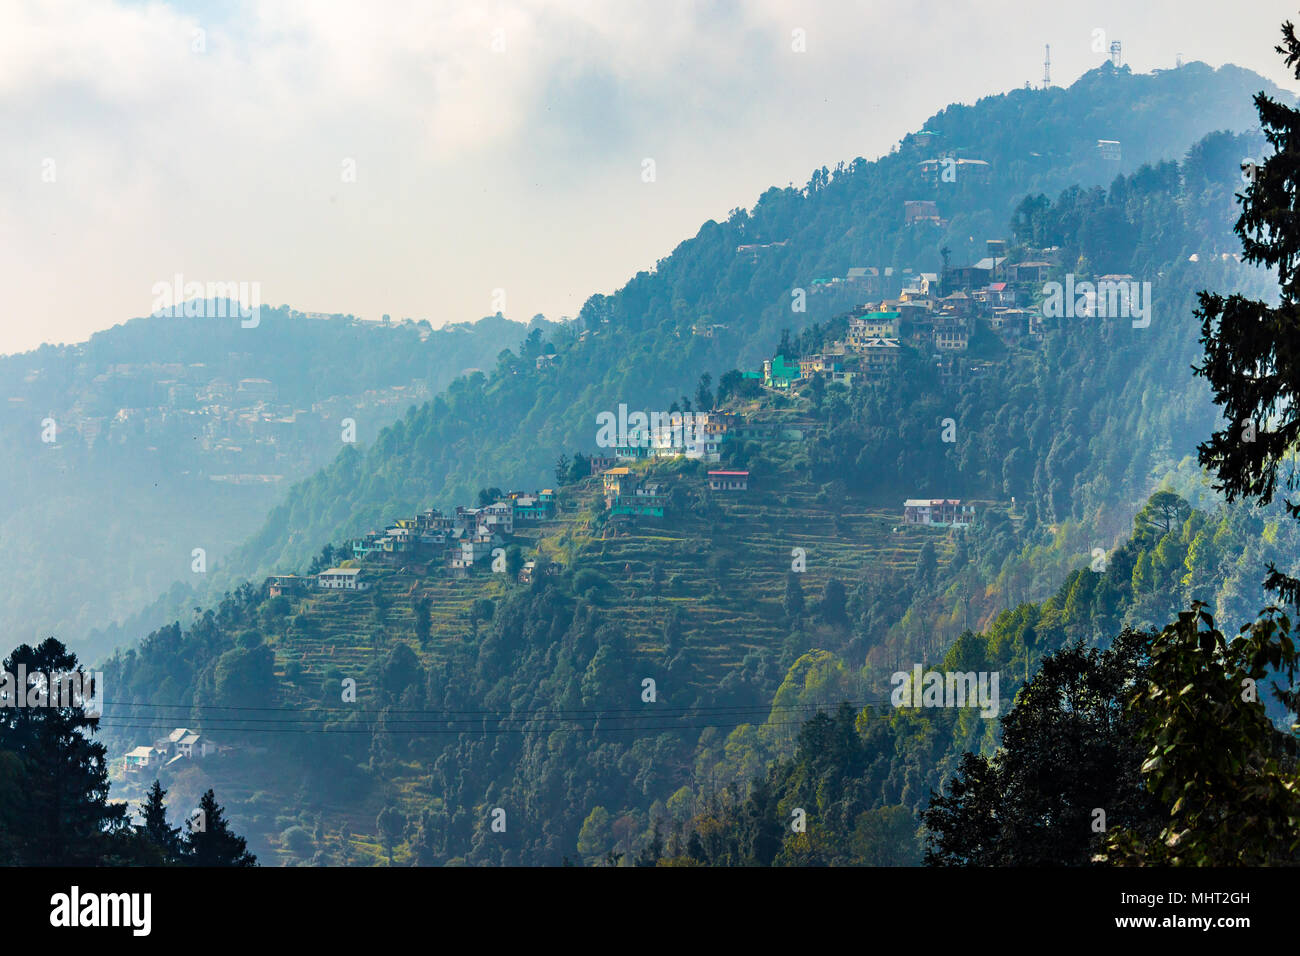 Beautiful homes in the town of Dalhousie, Himachal Pradesh, India, Asia. - Stock Image